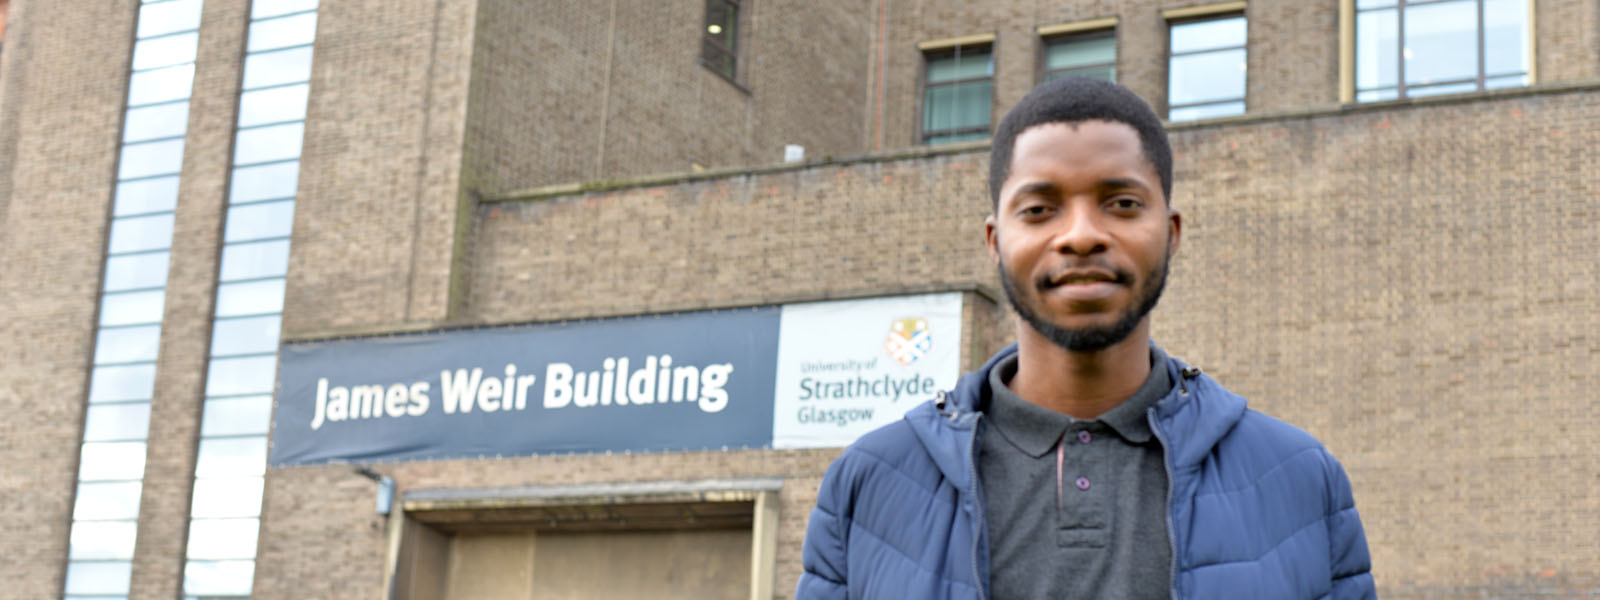 Ramsay Meiklem, graduate from Strathclyde Science Faculty